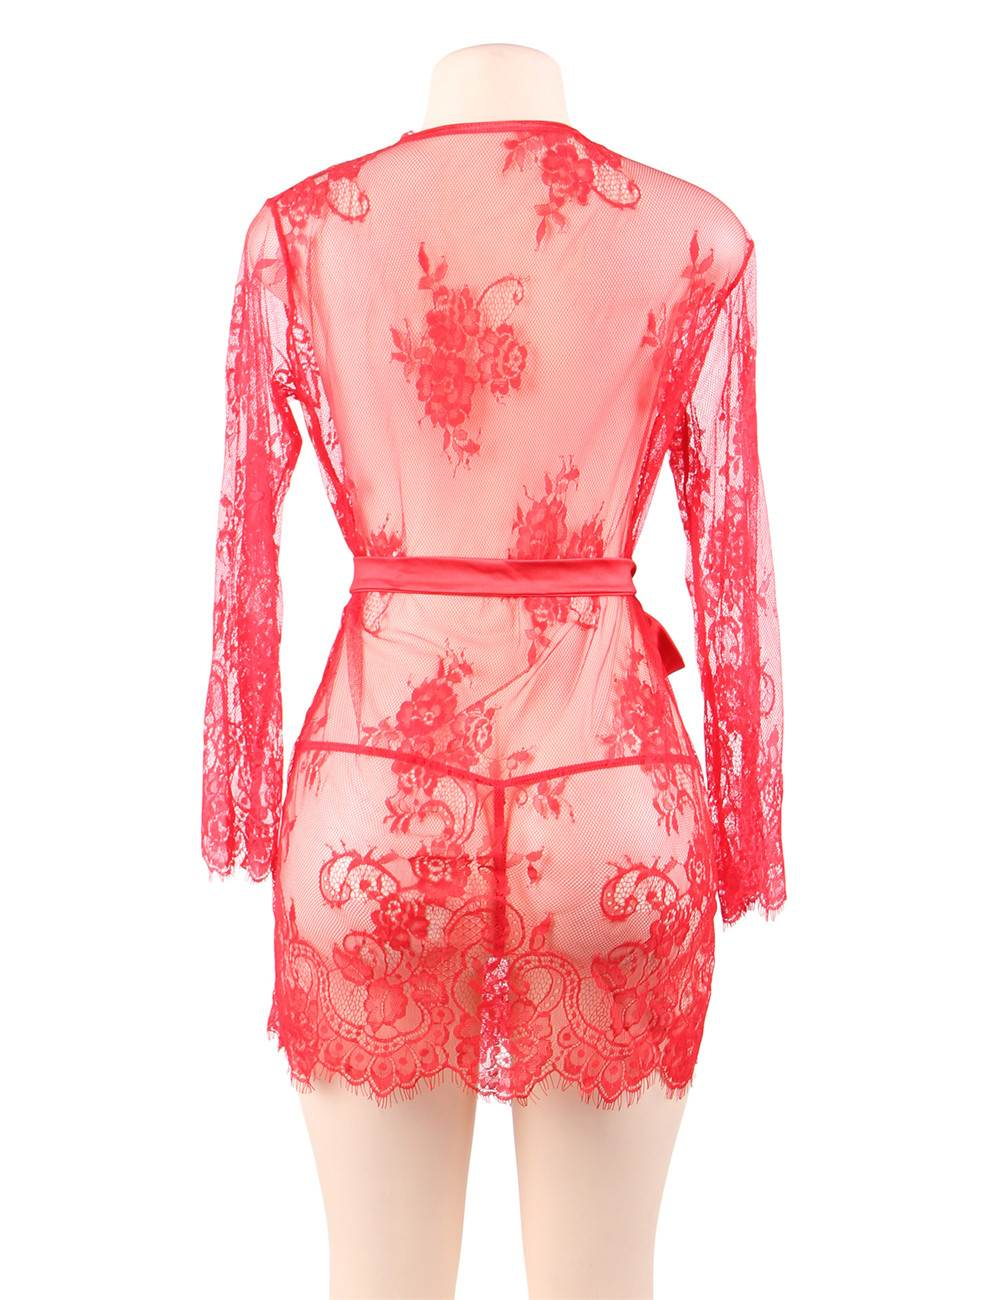 Red Eyelash Lace Sleepwear Gown Set